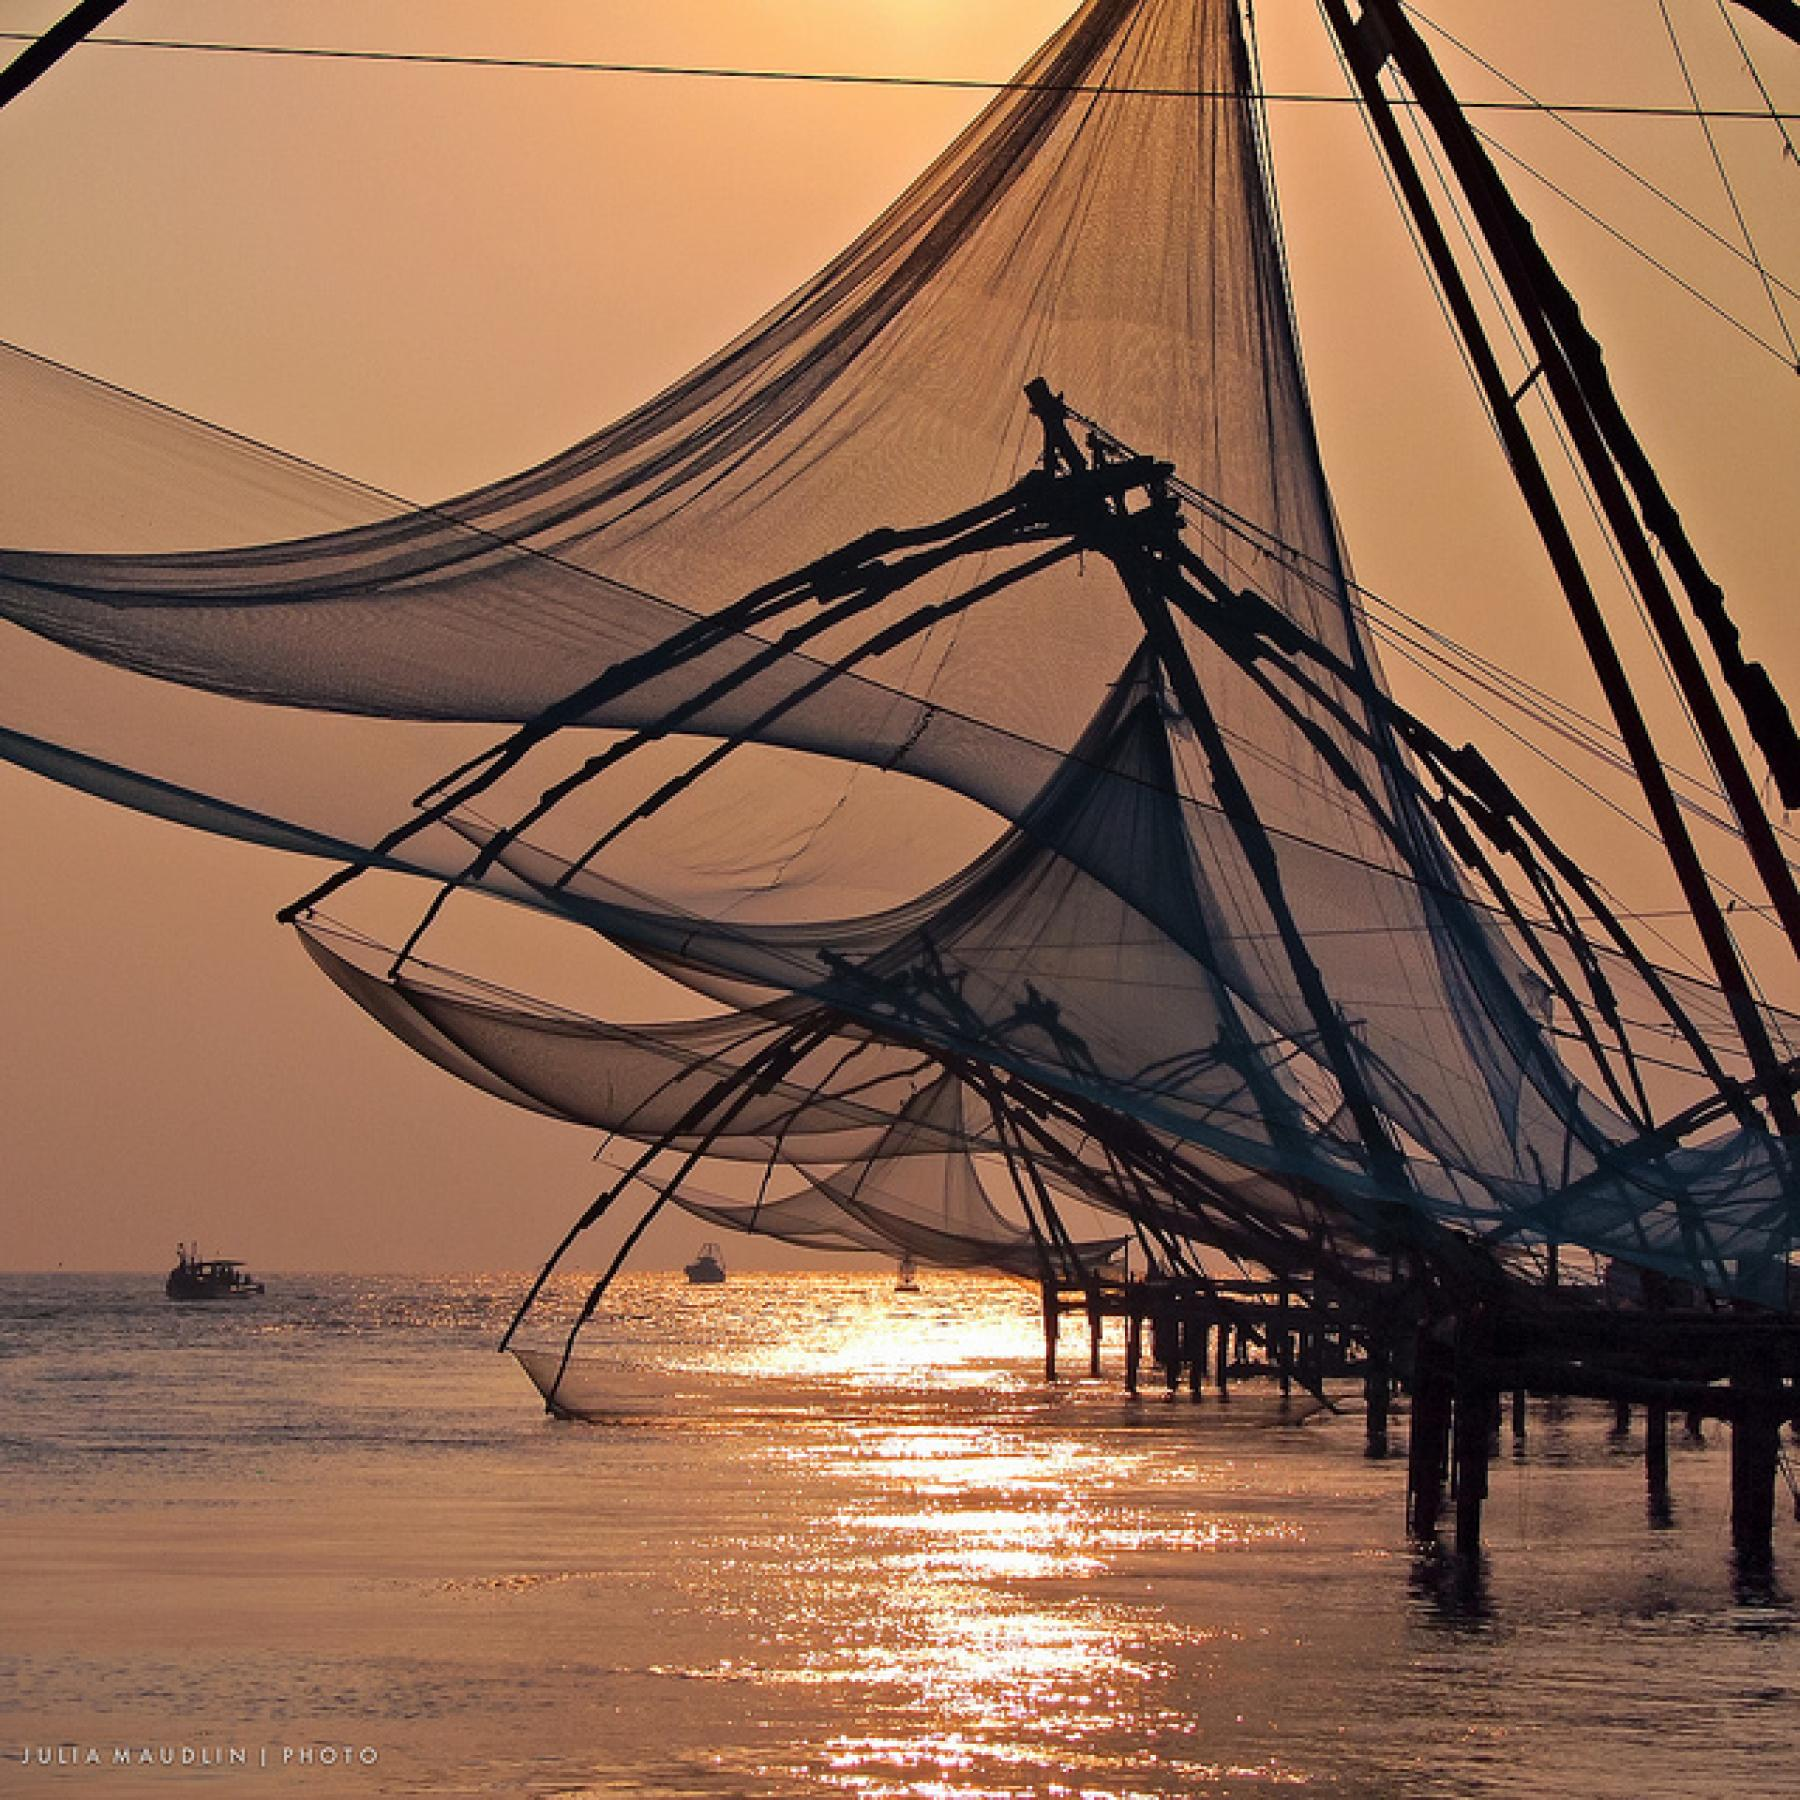 Relax, unwind and recharge in beautiful Kerala  starting at Kerala, India